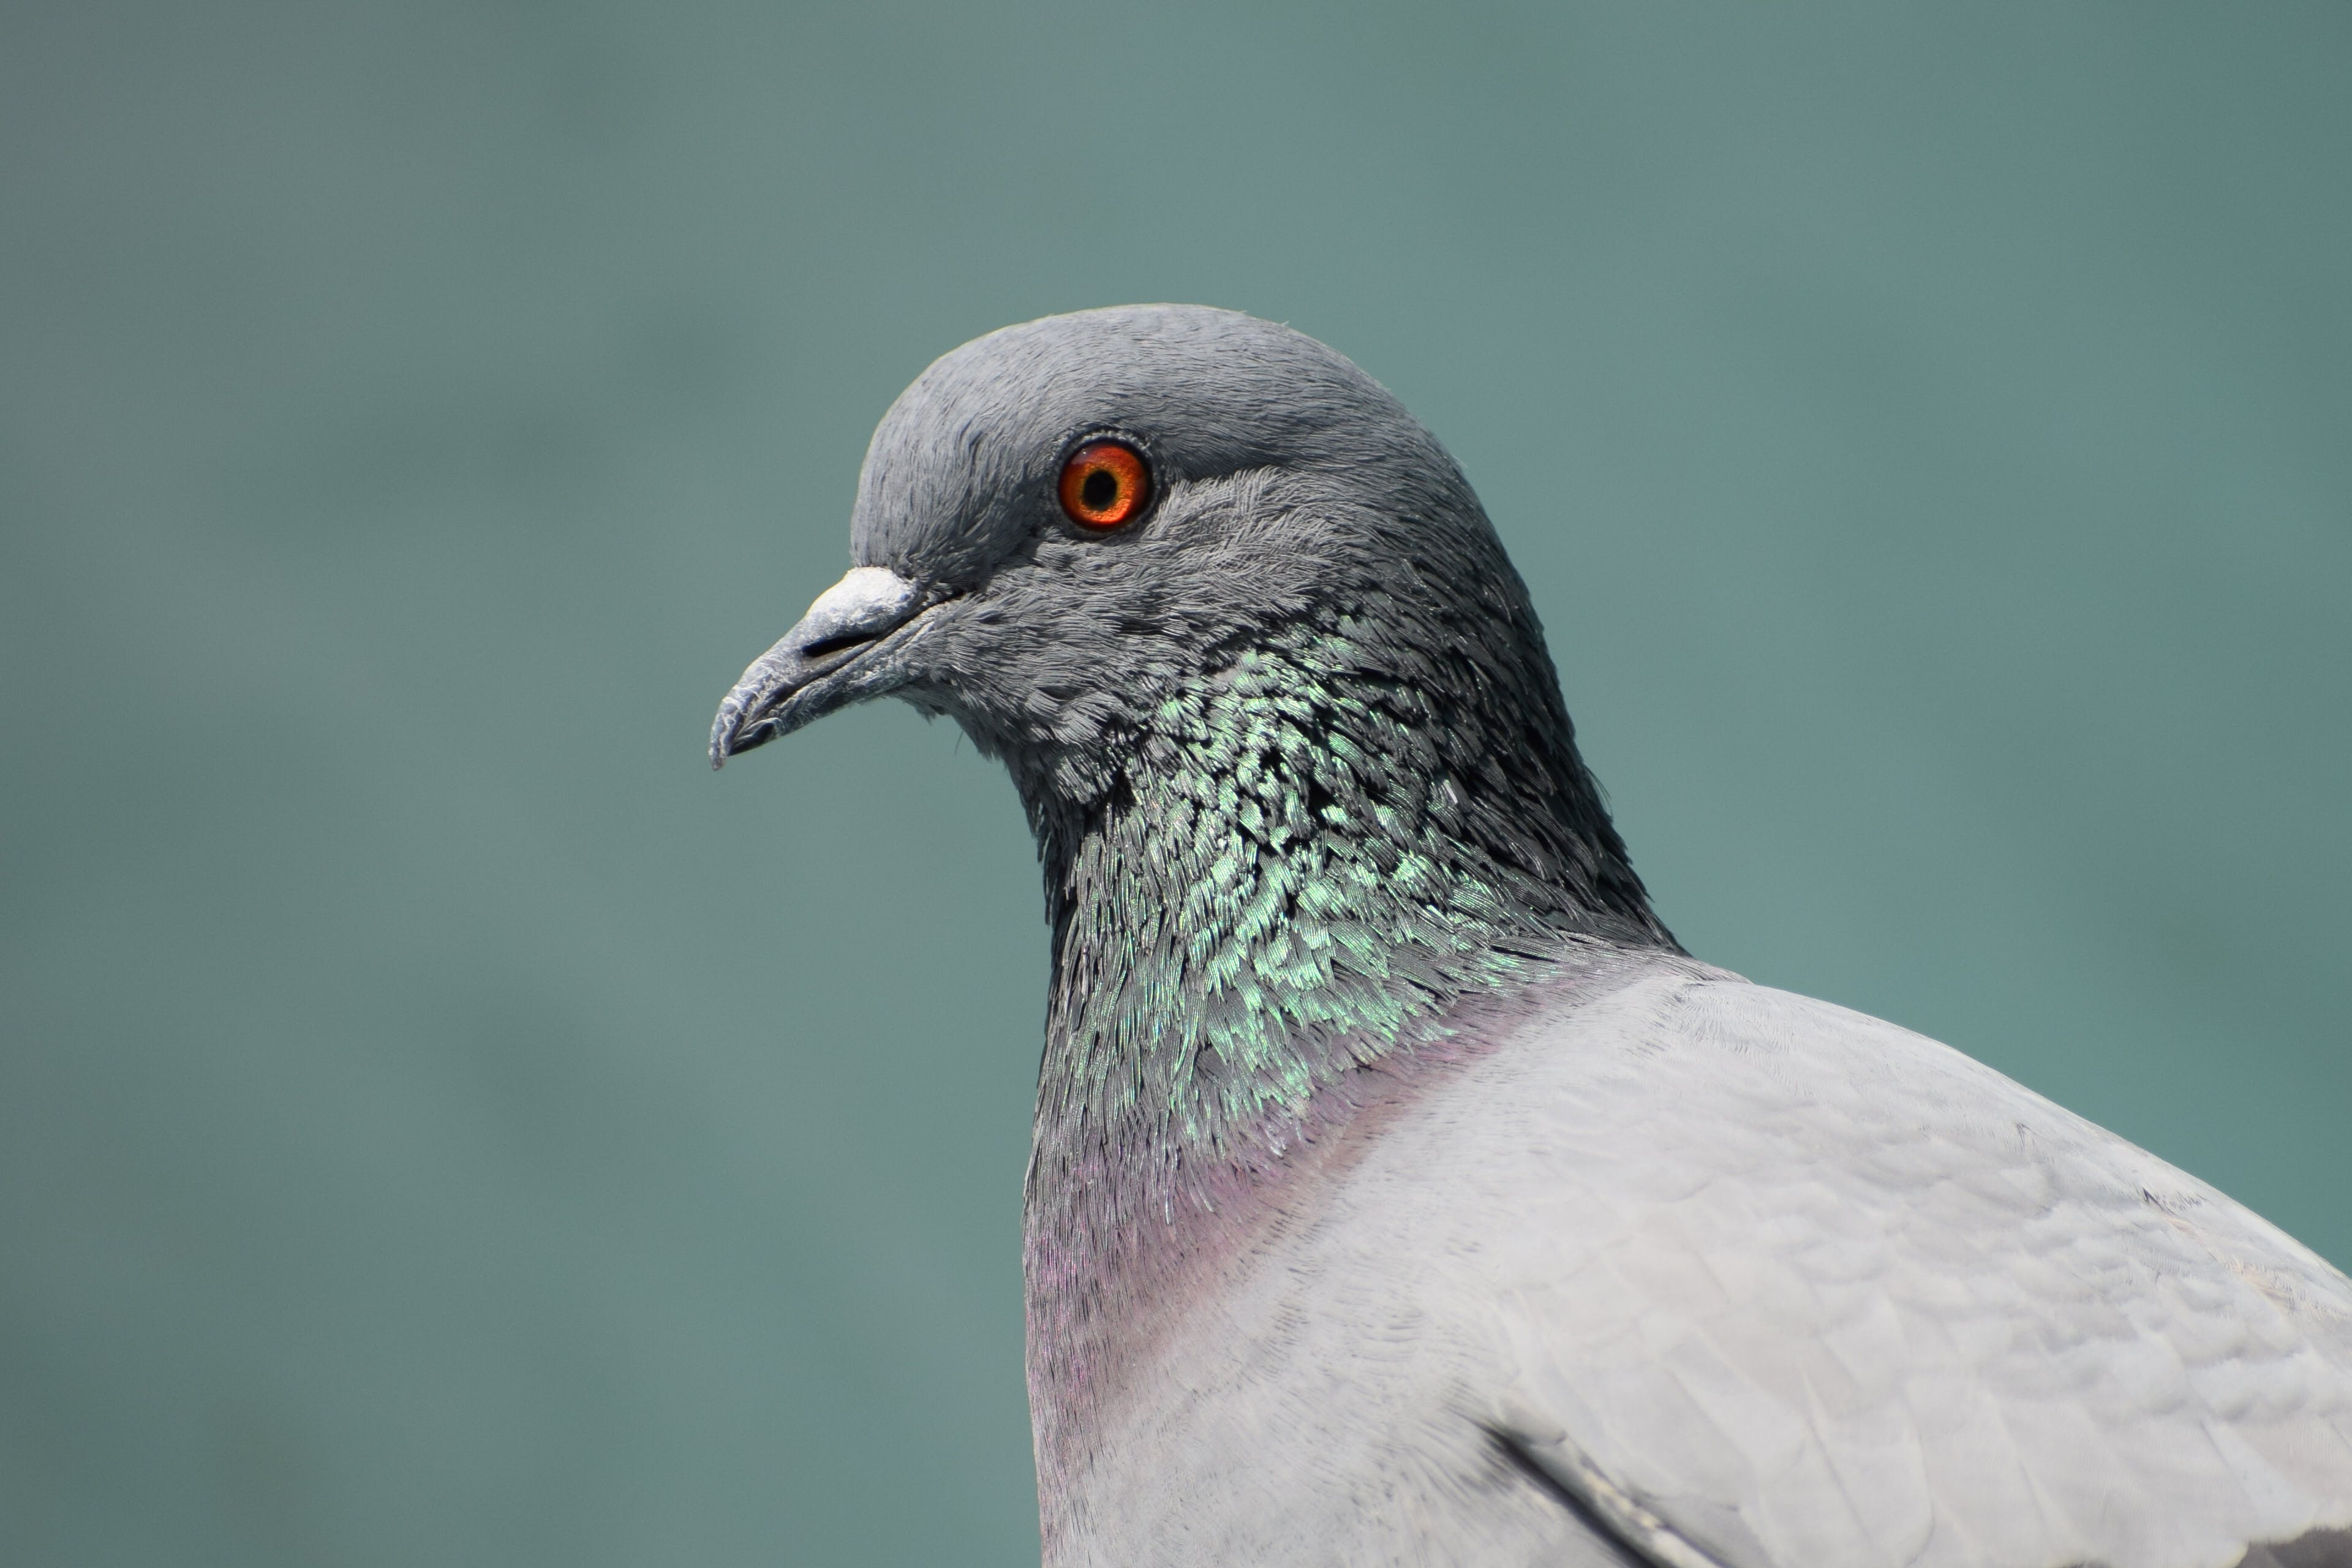 Gray Pigeon on Close Up Photography